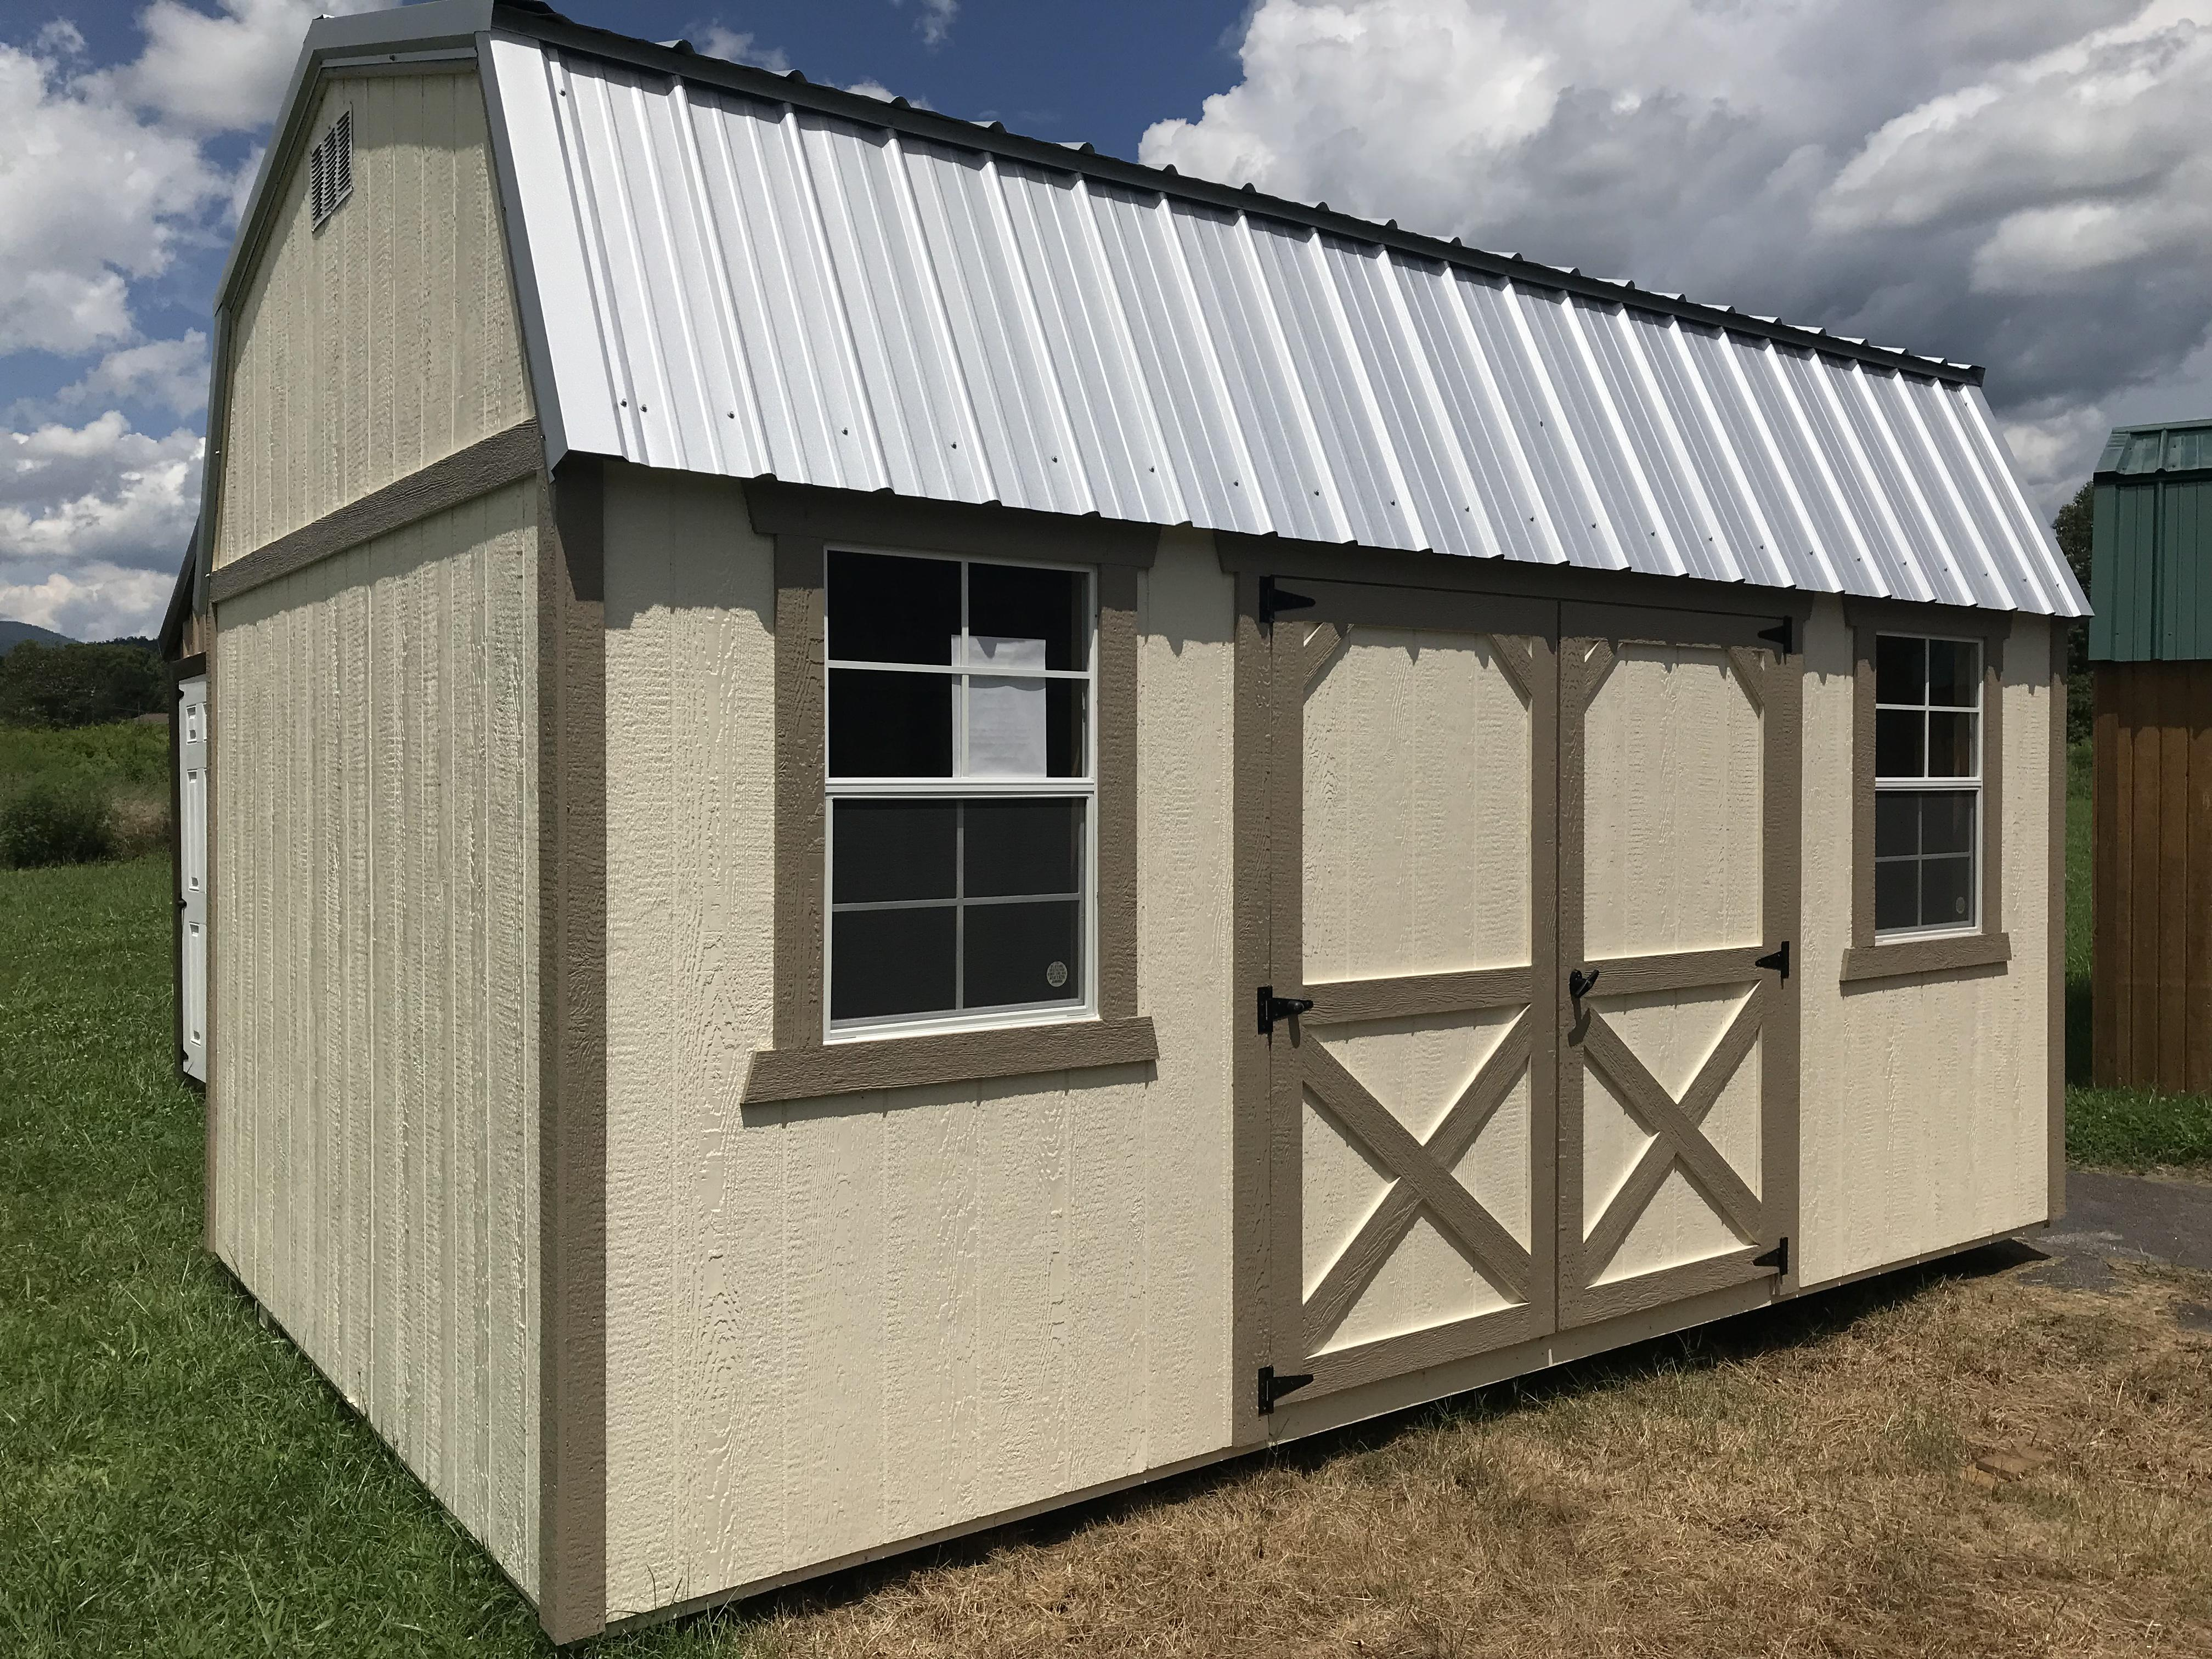 Painted 10x16 Lofted Barn Sold - but we can order you another!